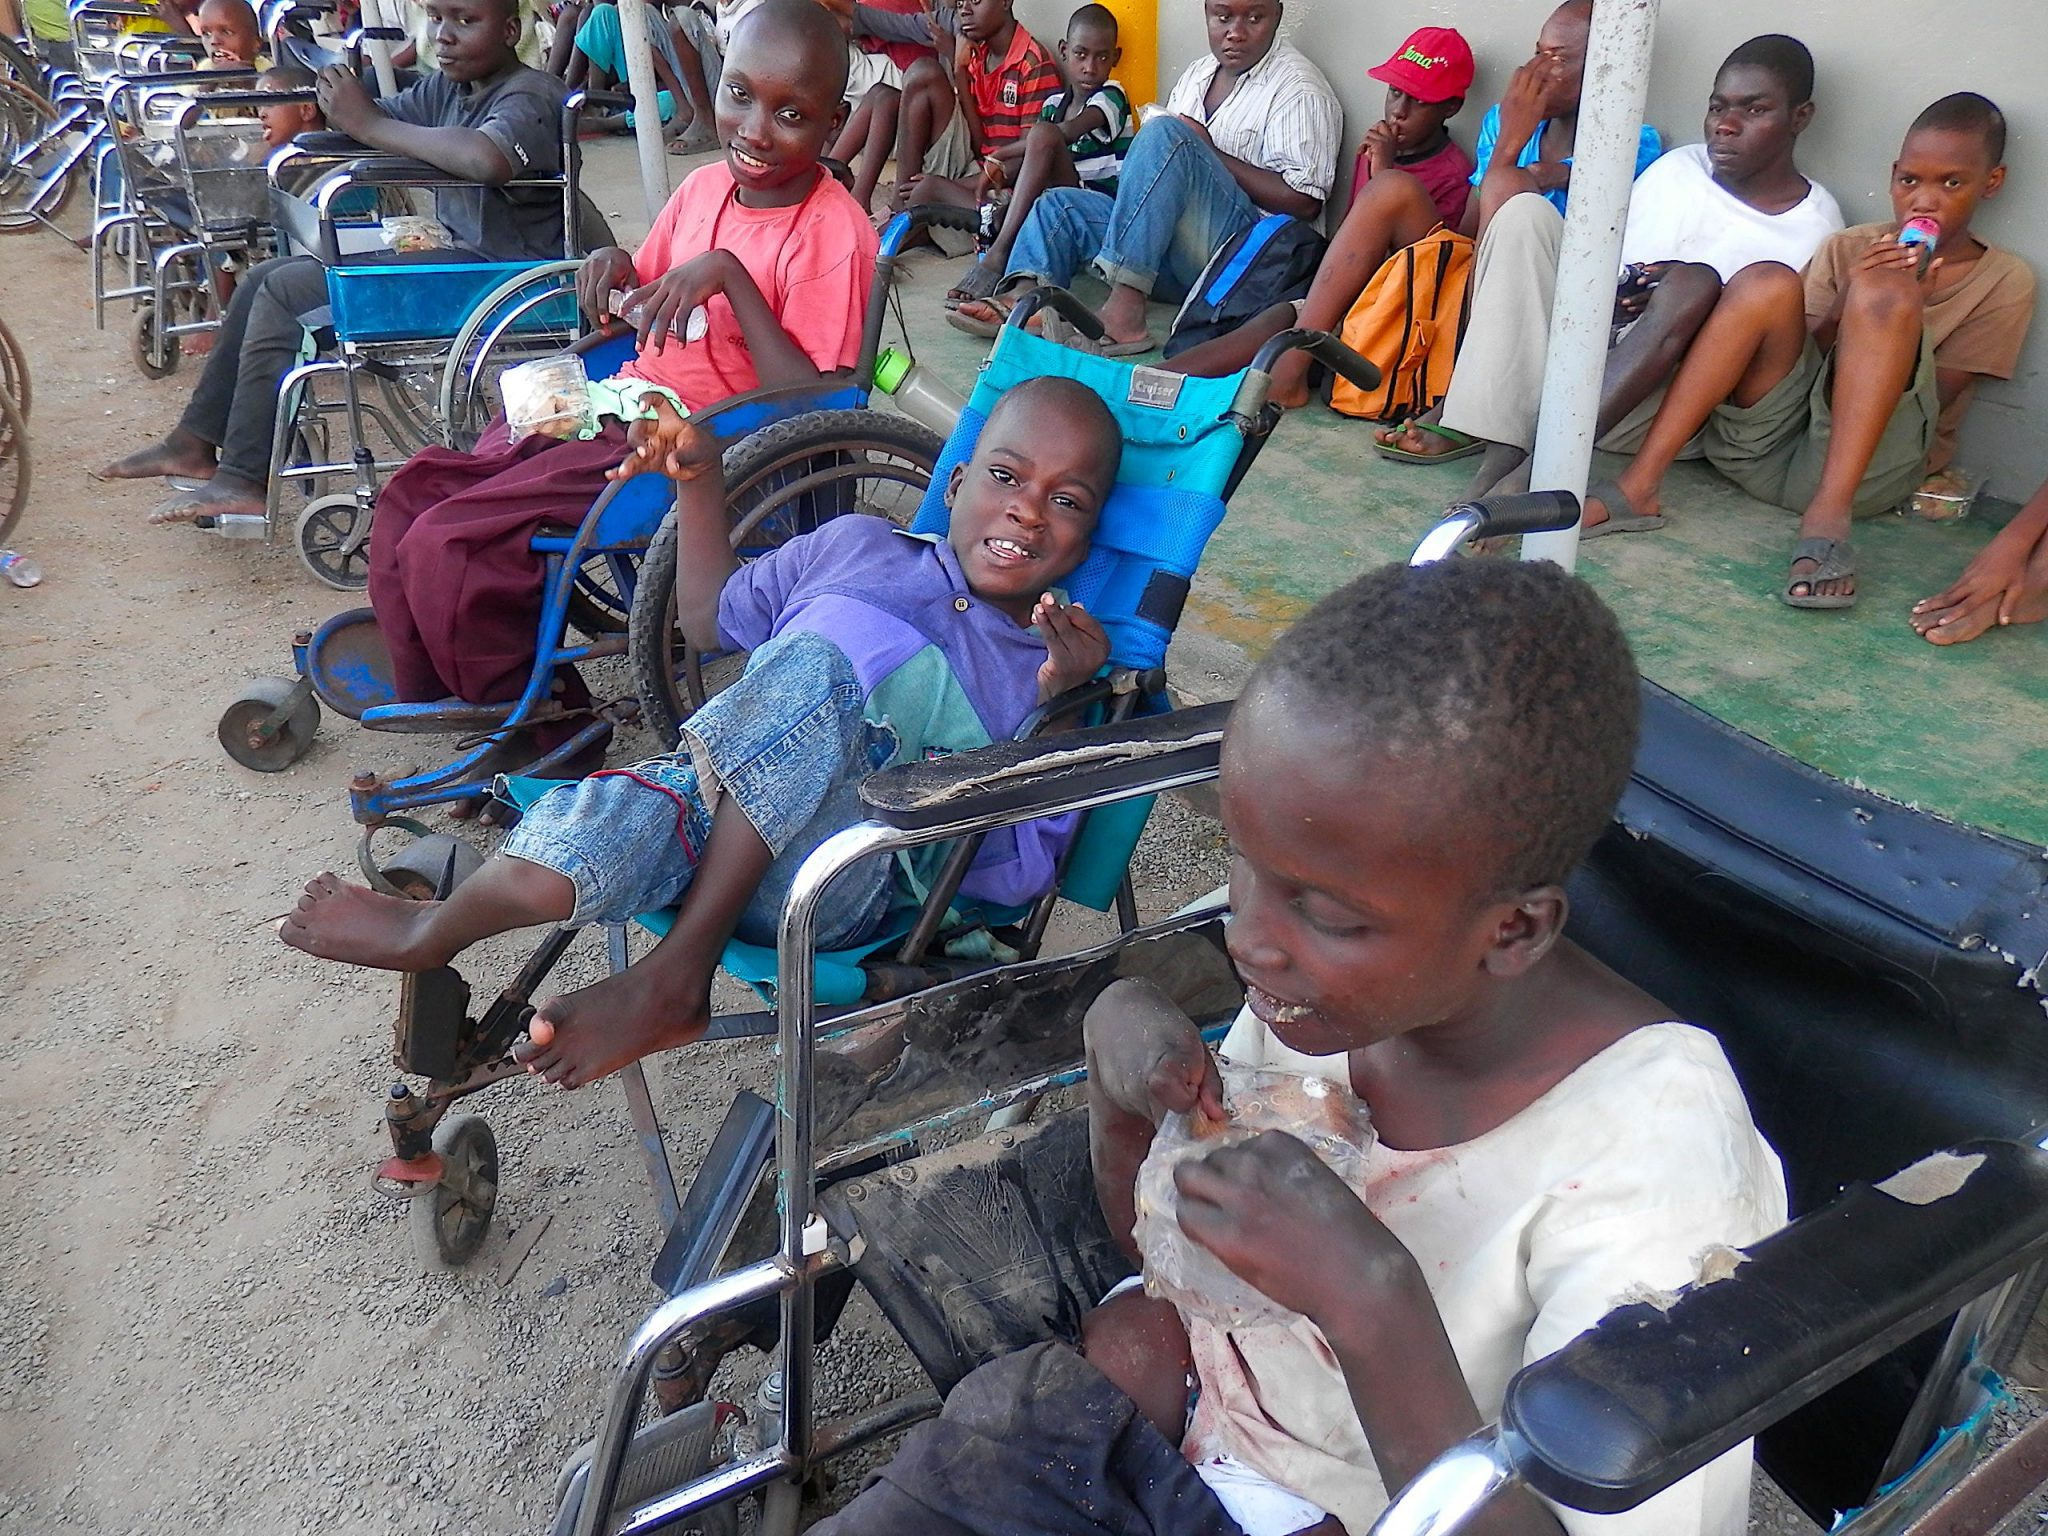 Two long rows of Kenyan boys. Three young boys in wheelchair are most prominent in the photo.